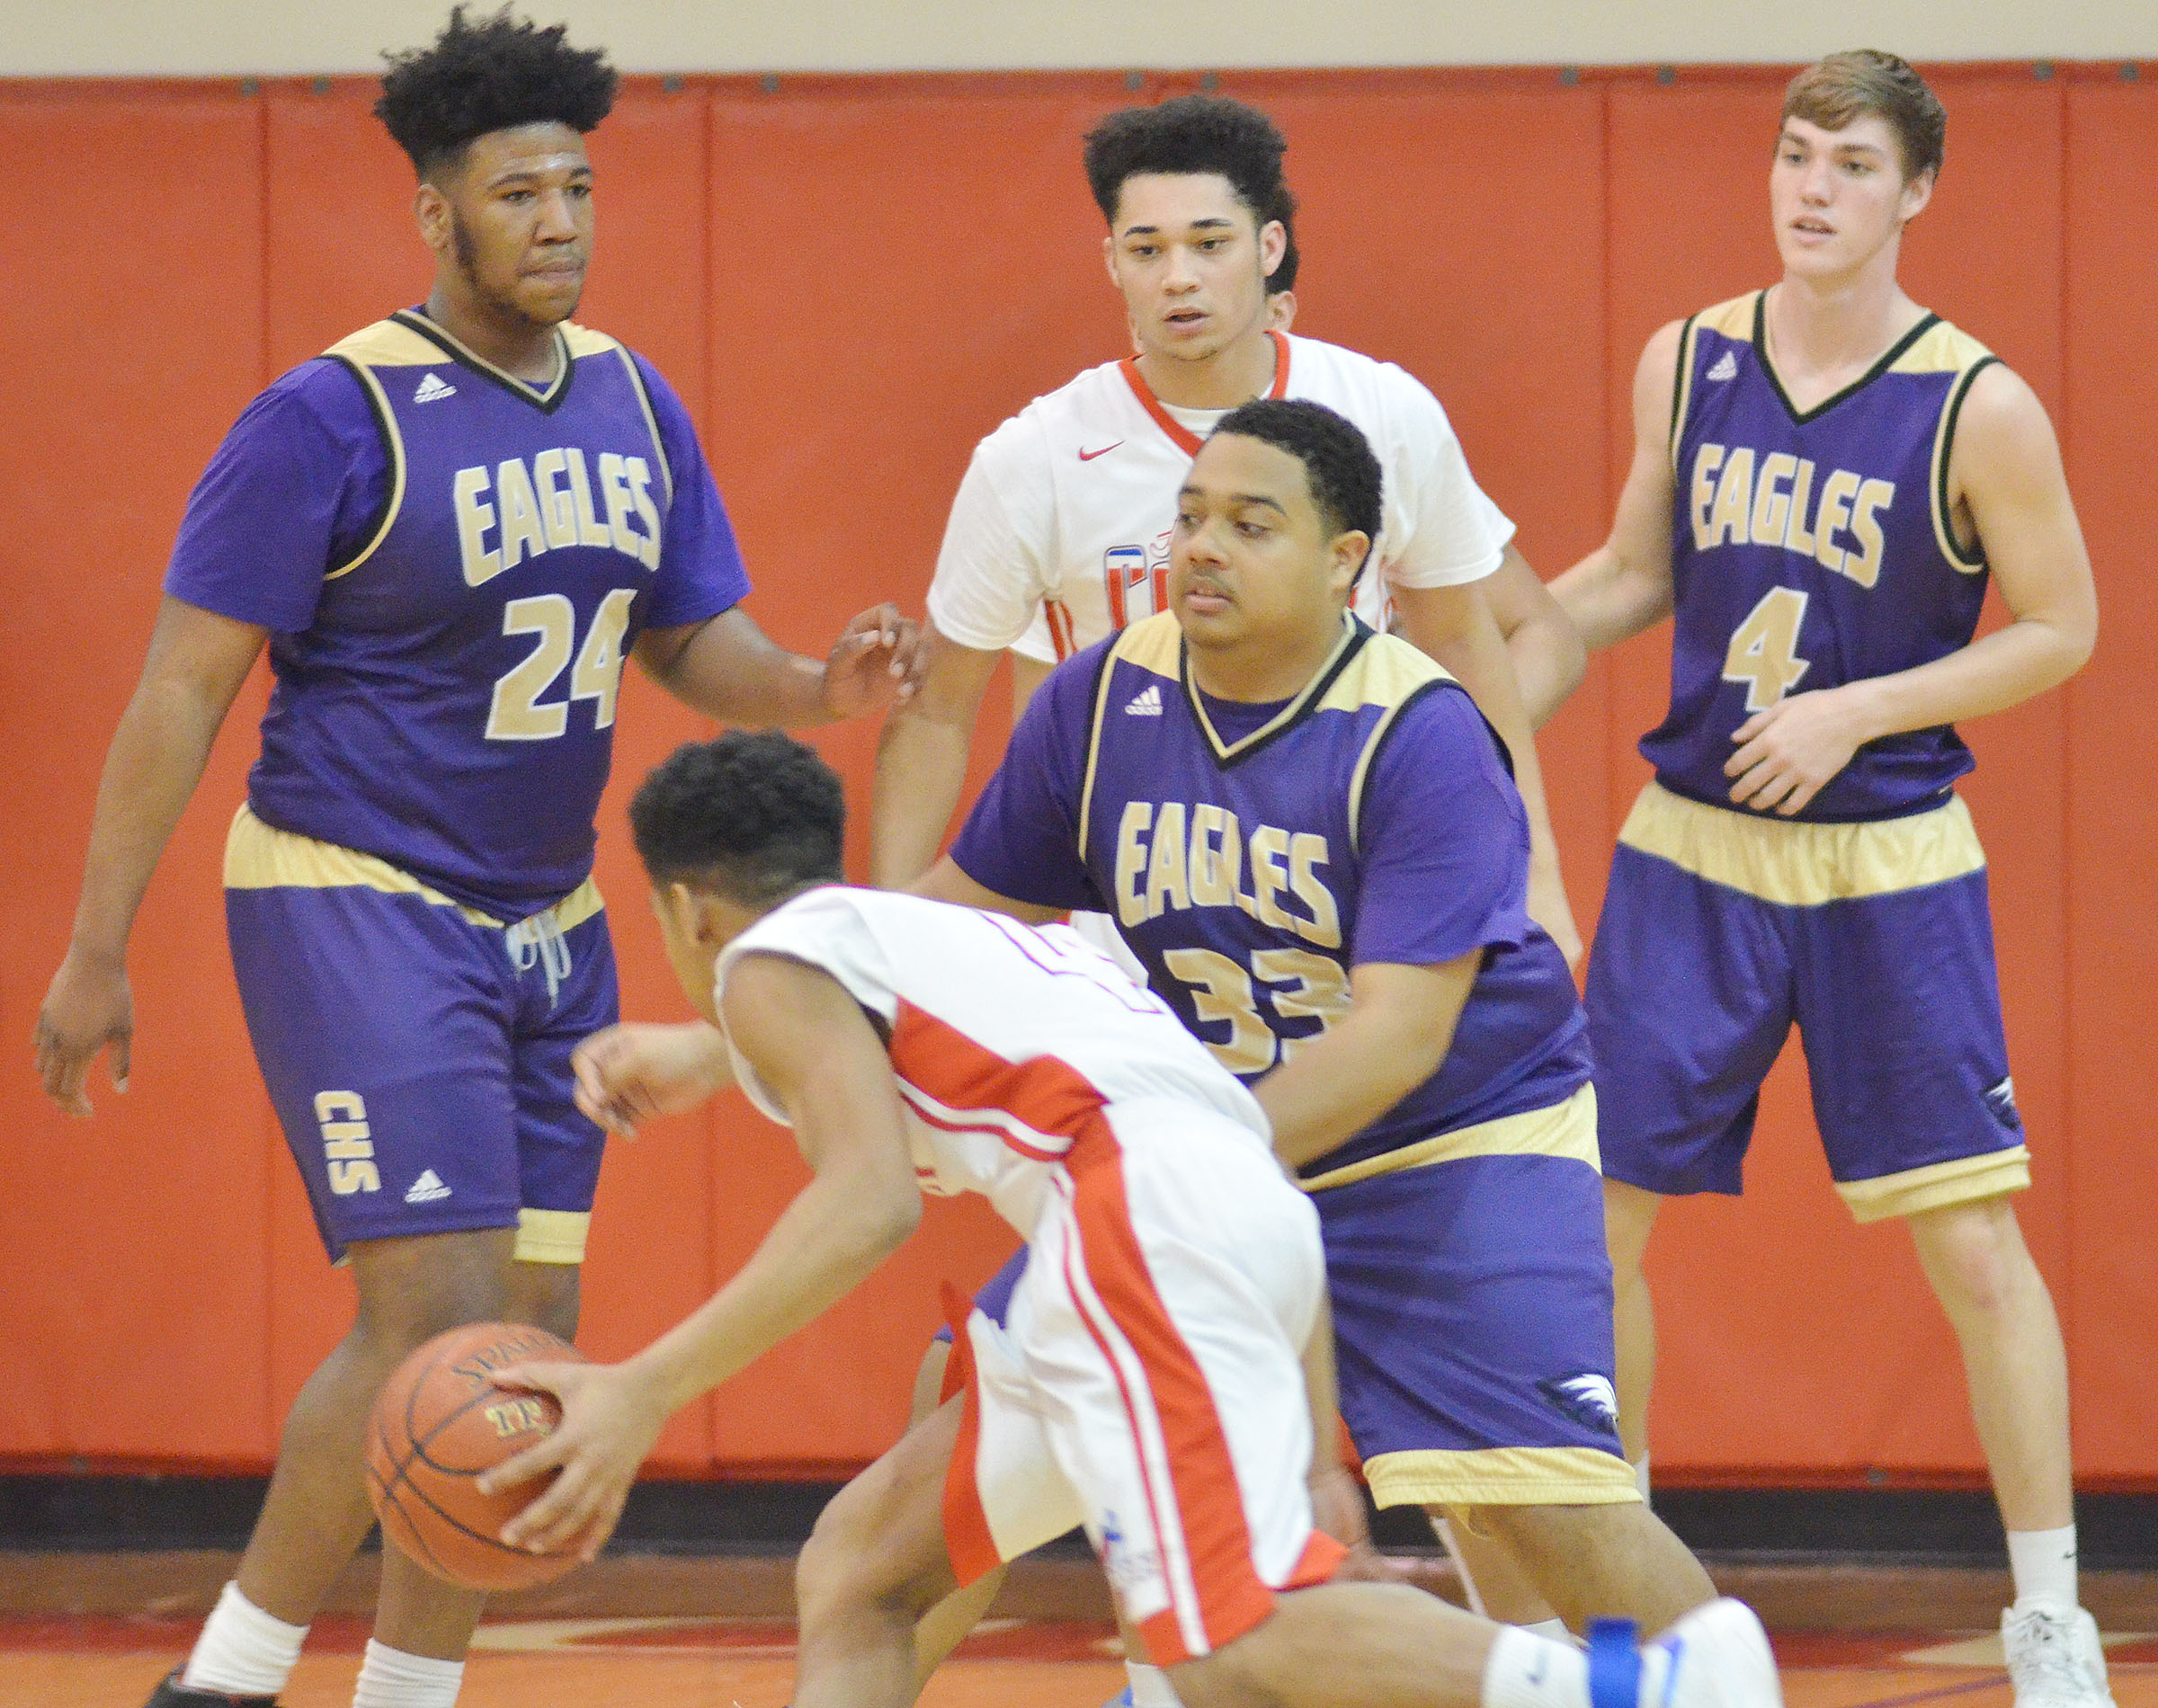 From left, CHS seniors Micah Corley, Ricky Smith-Cecil and Zack Bottoms play defense.